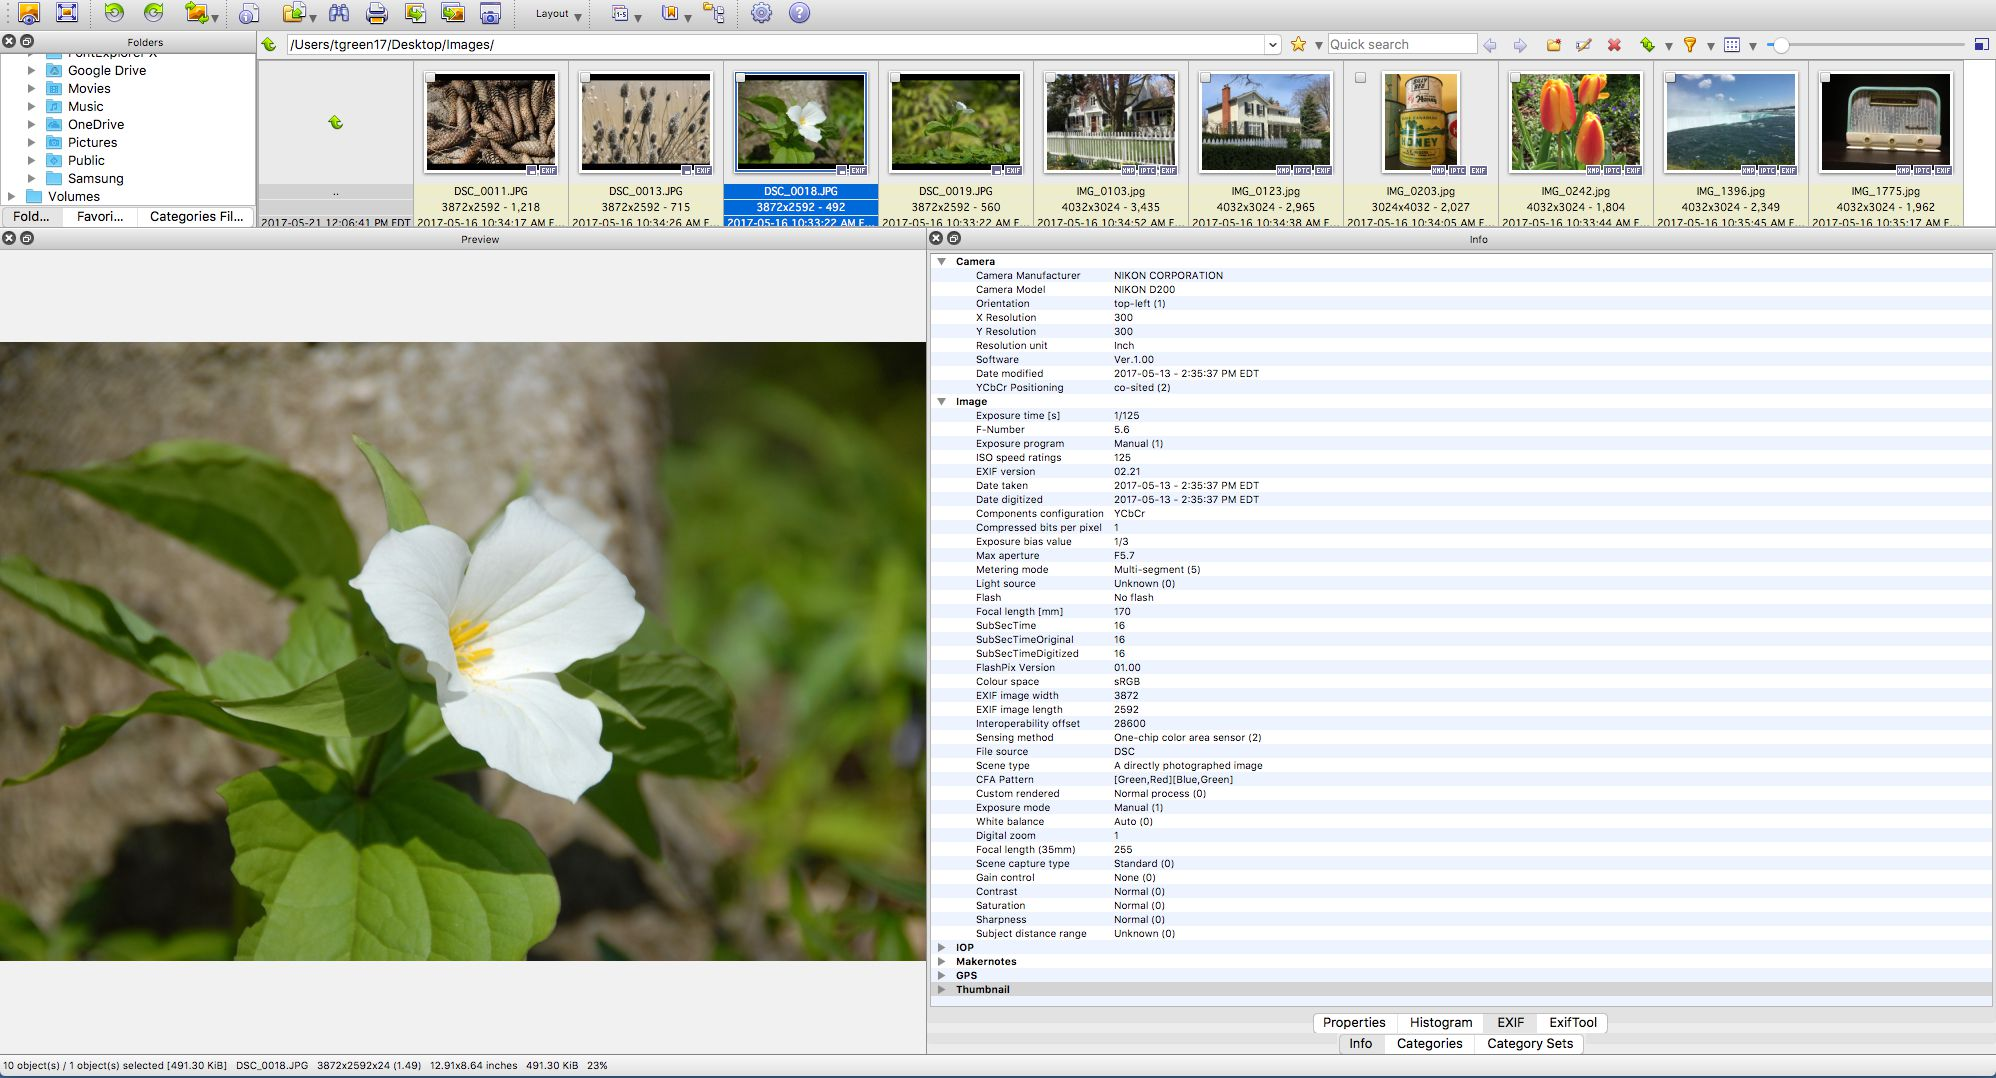 Viewing EXIF Data with XnViewMP